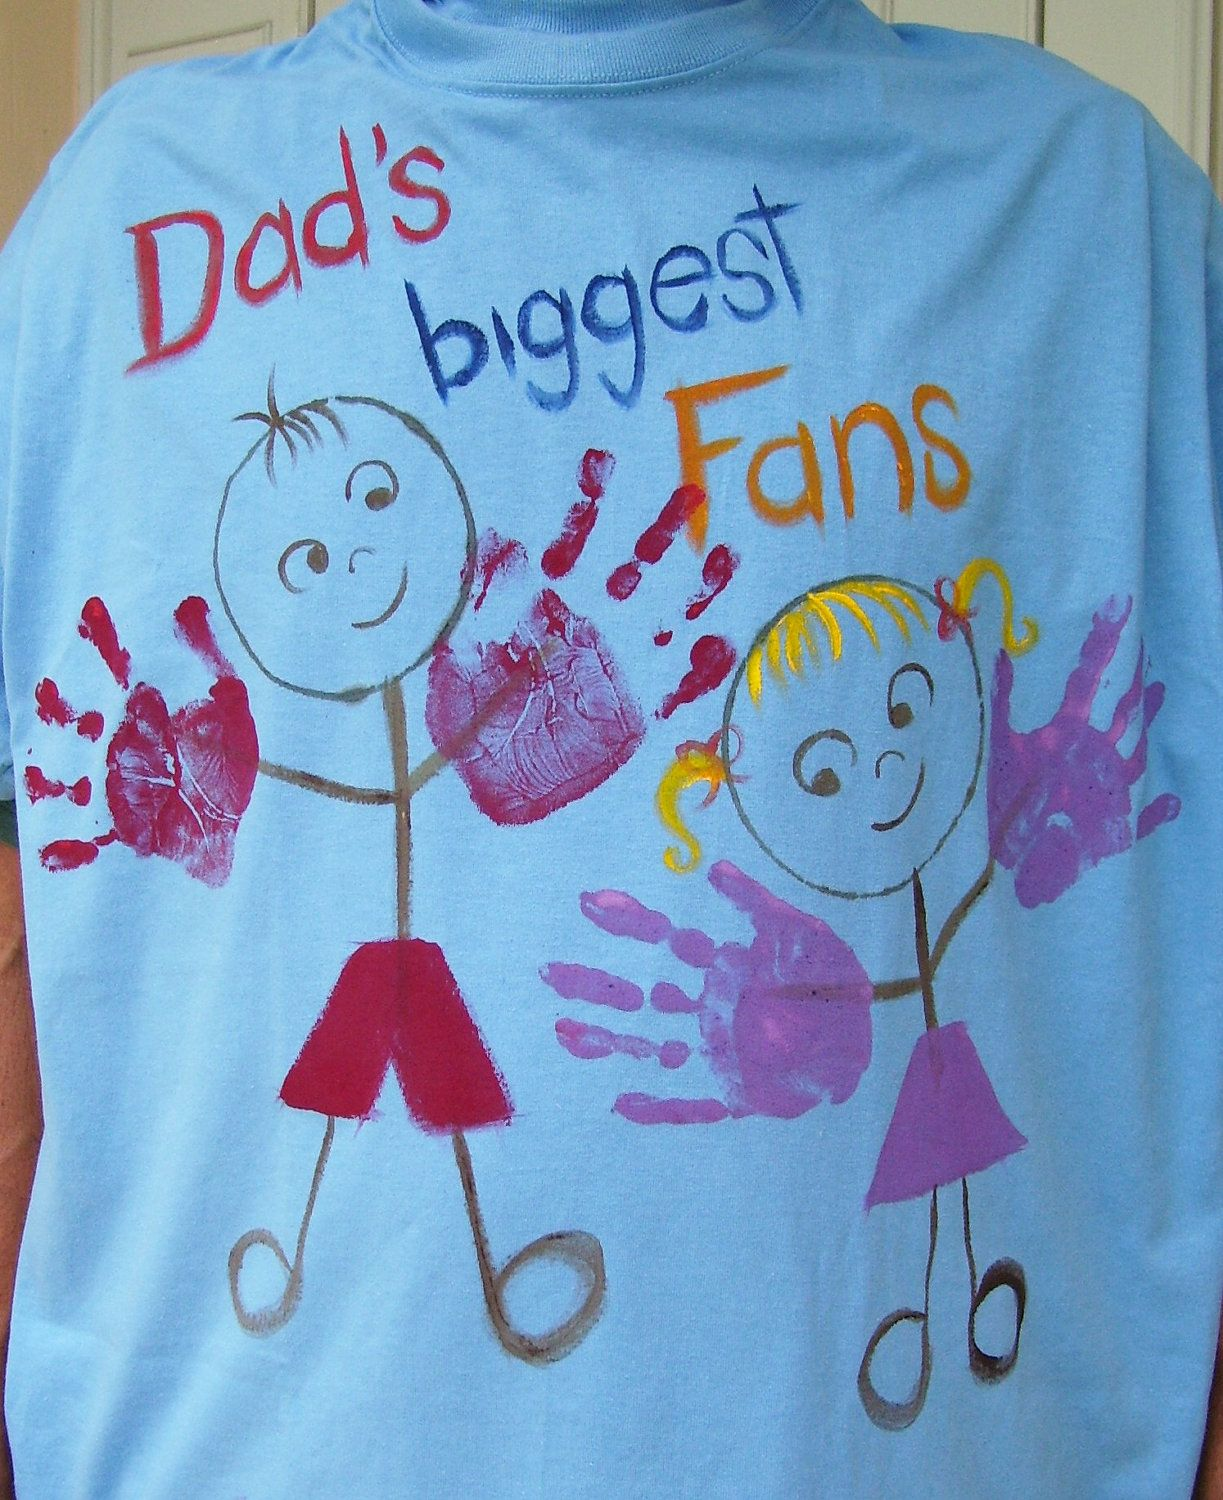 8c19301c Dad's TShirt Biggest Fans Hand Painted by roseartworks on Etsy. $30.00, via  Etsy.